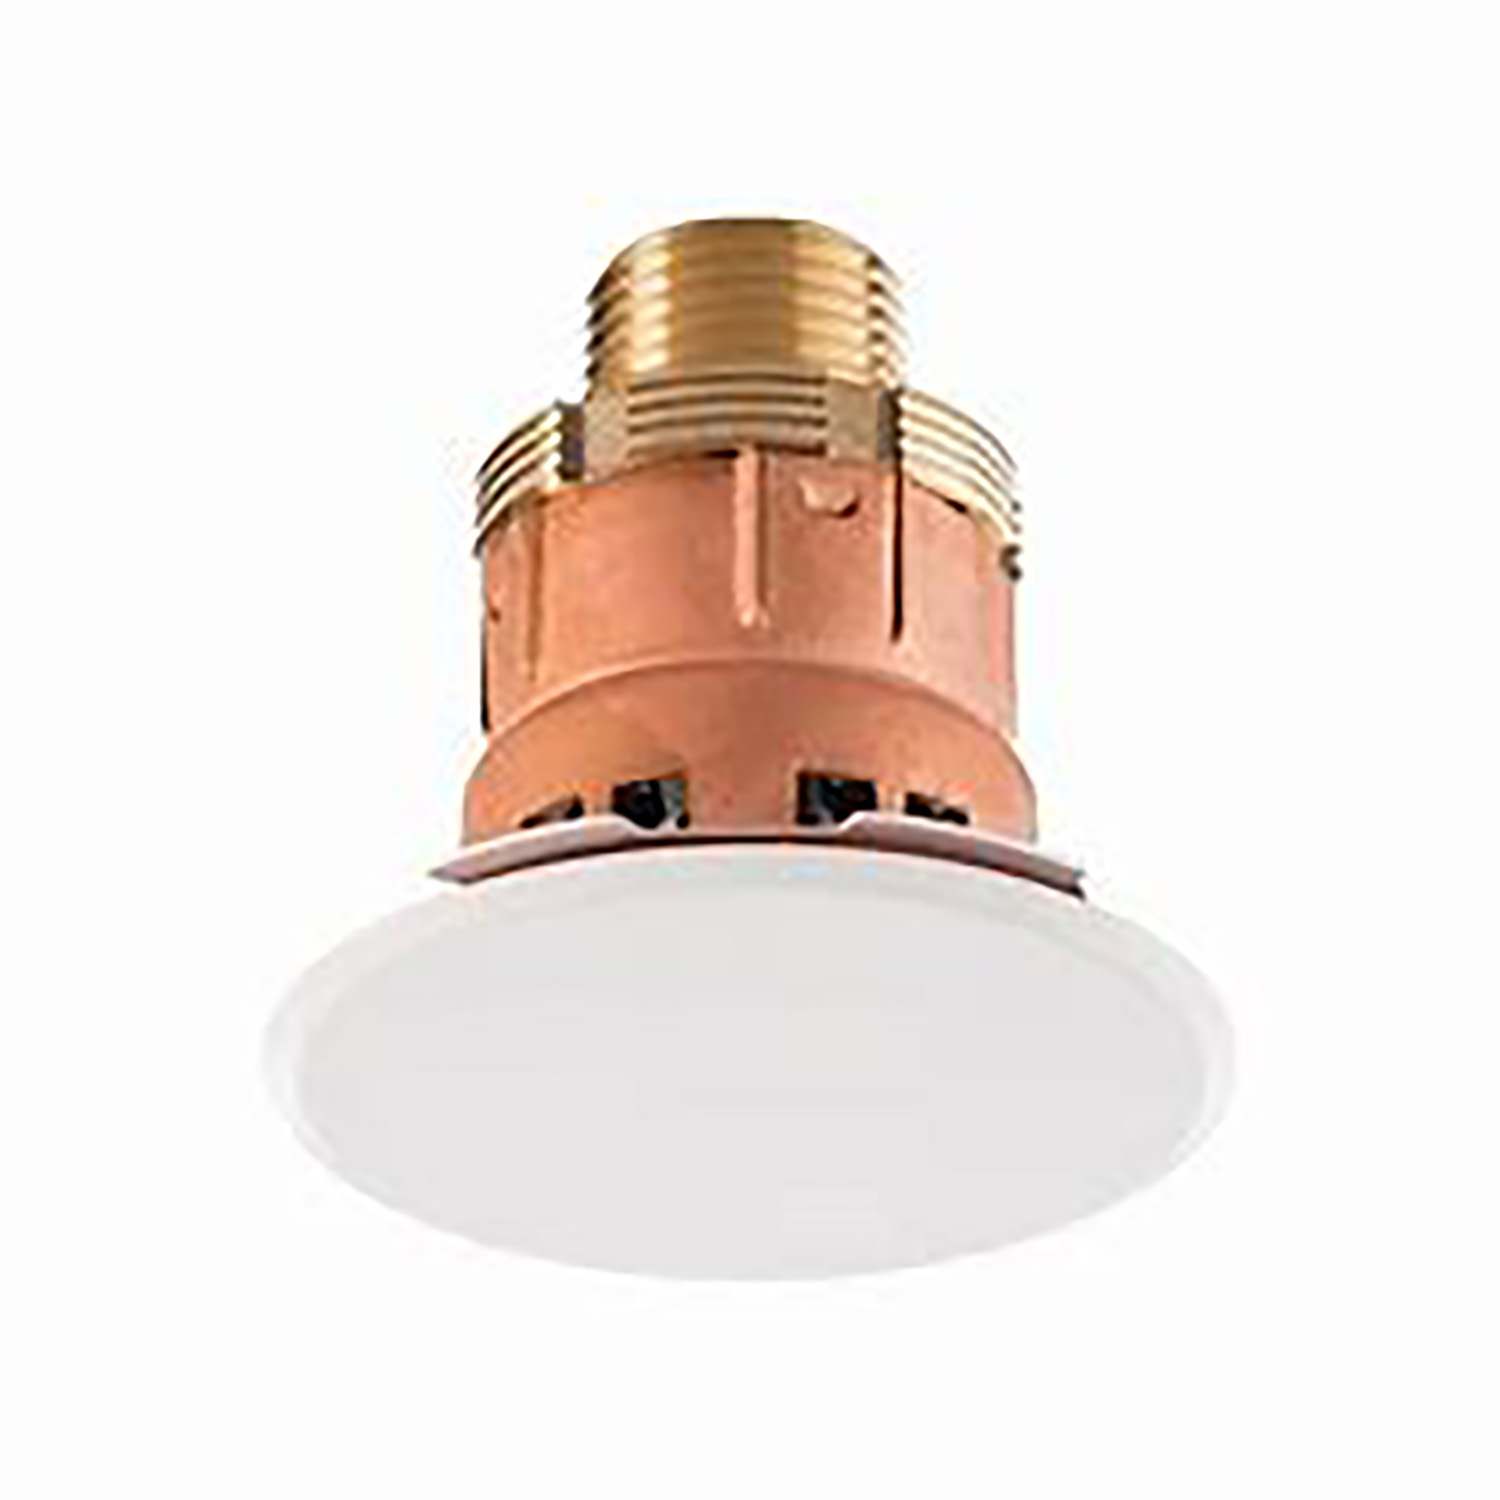 DISCREET - Concealed sprinkler heads in the ceiling space with the smallest cover plate in the industry - only 60 mm.